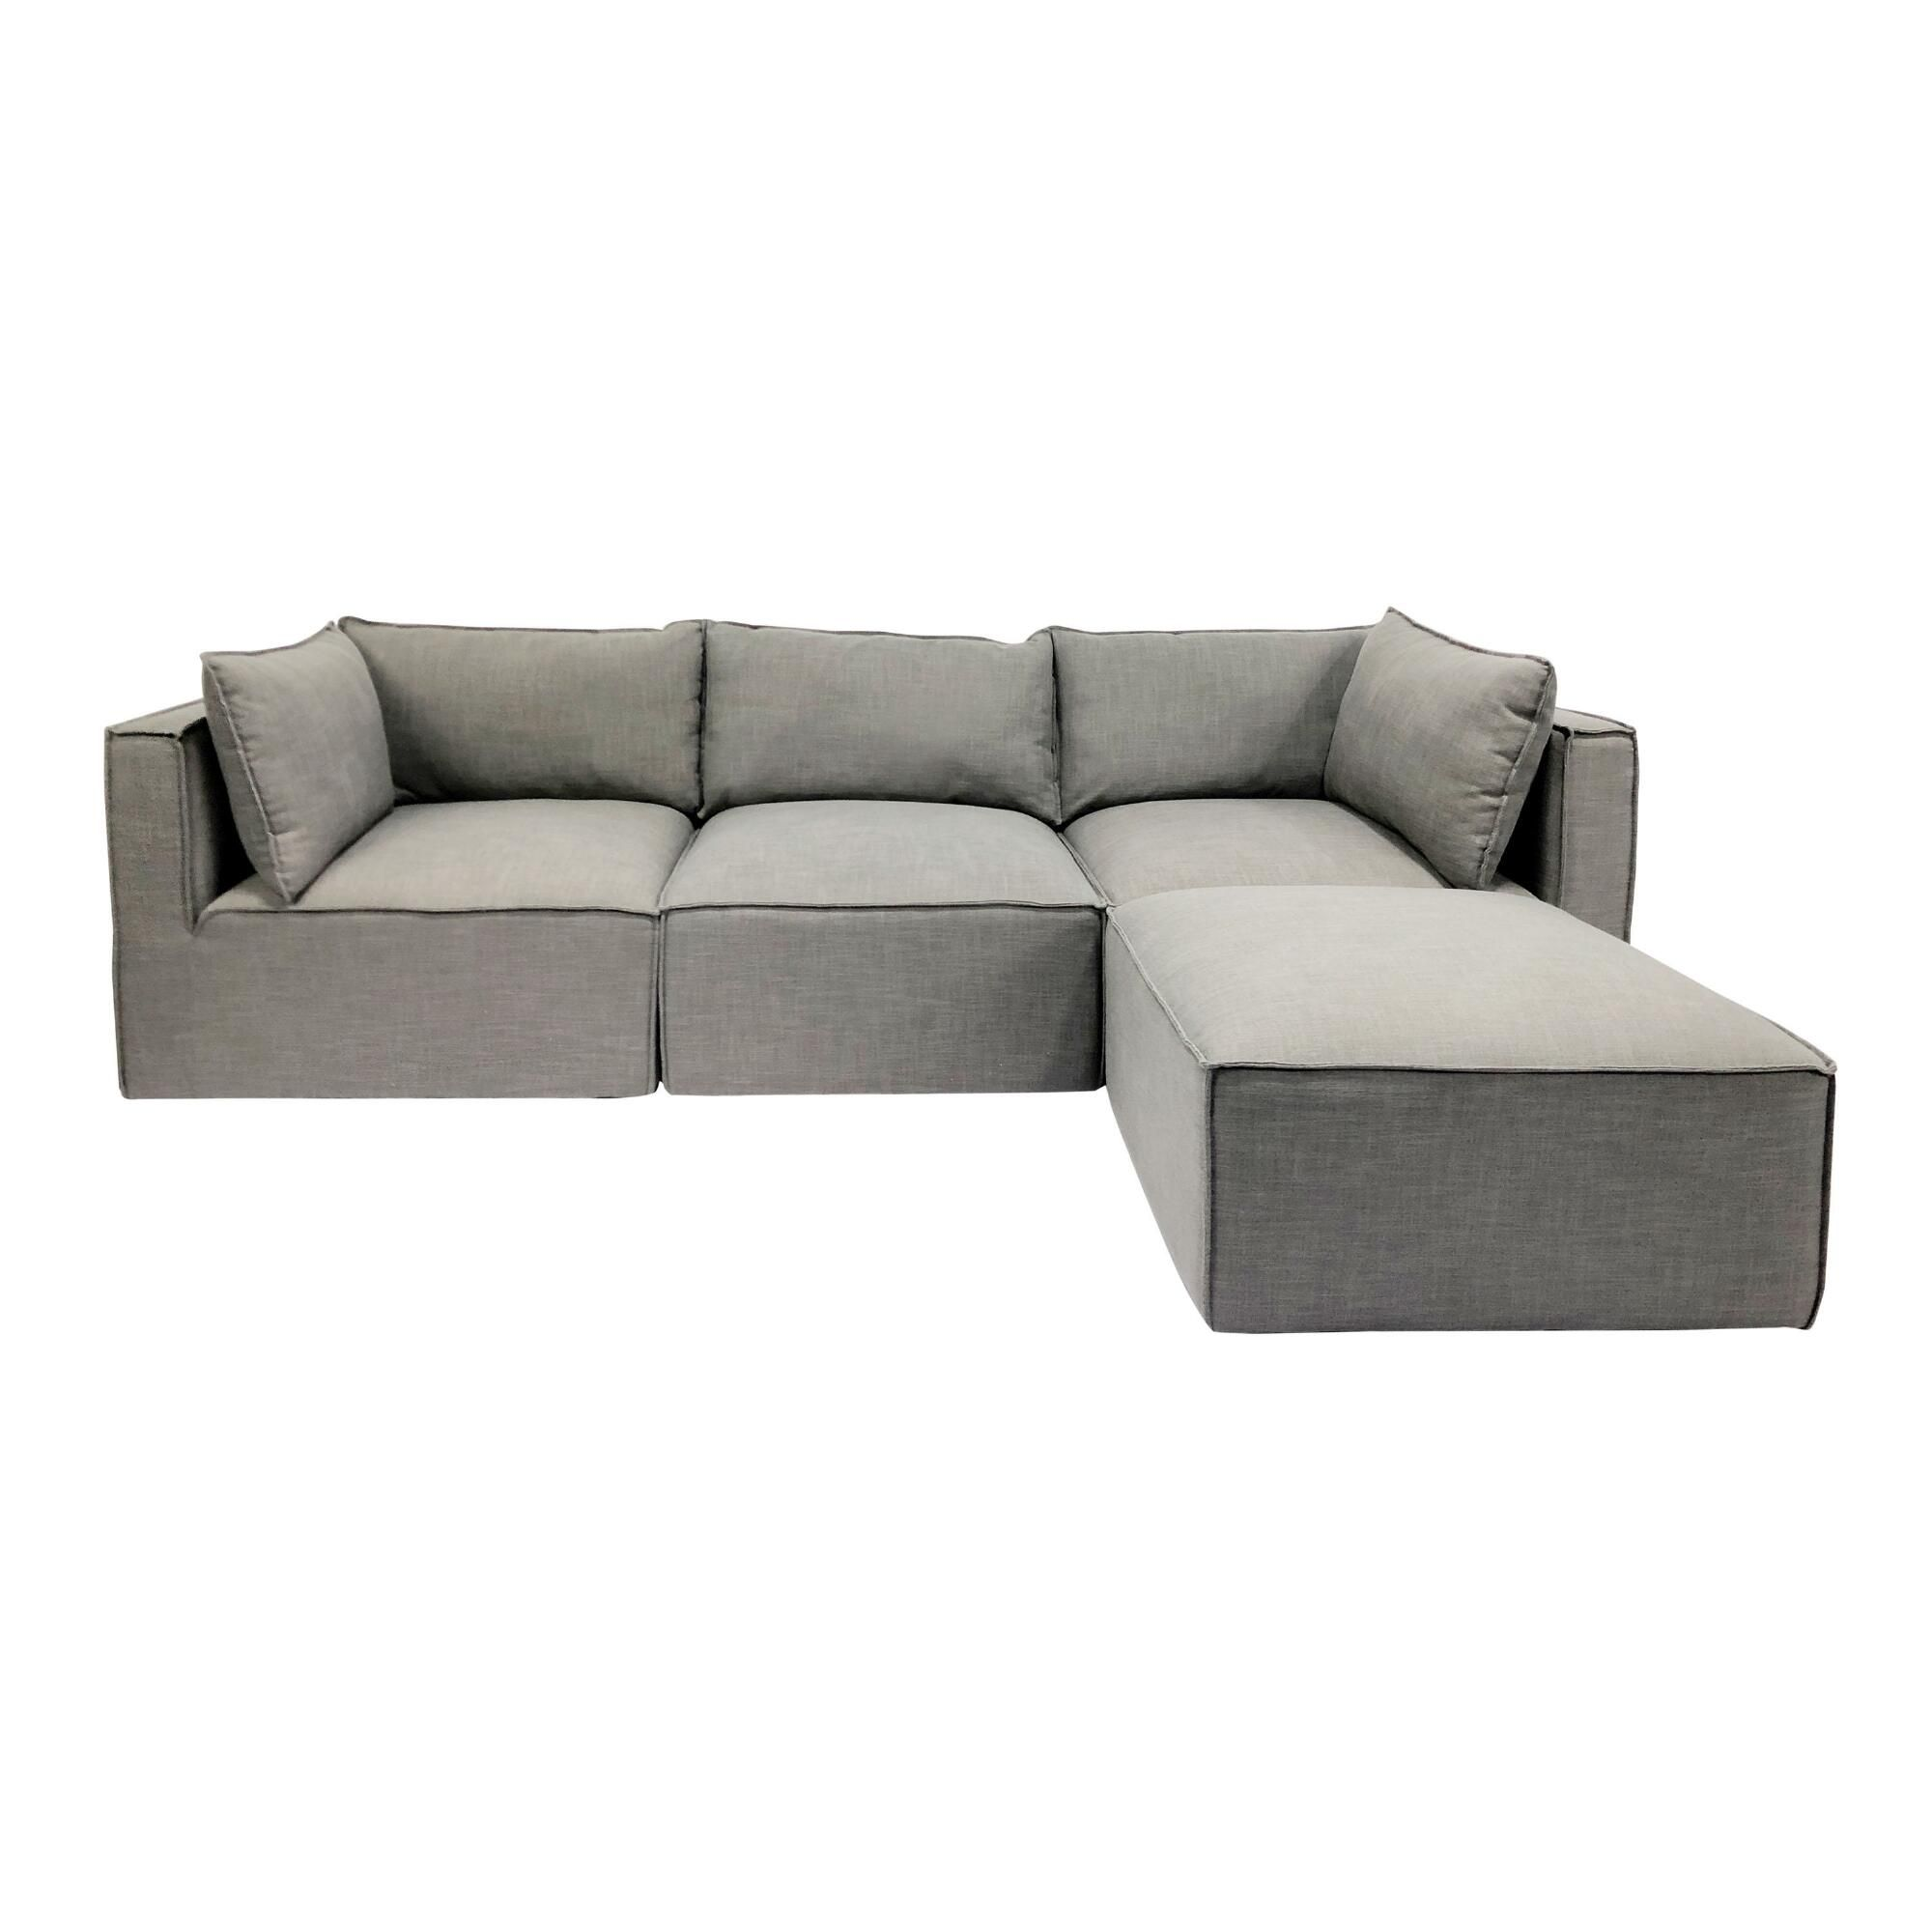 Gray Tyson 4 Piece L Modular Sectional Sofa By World Market Modular Sectional Sofa Modular Sectional Sectional